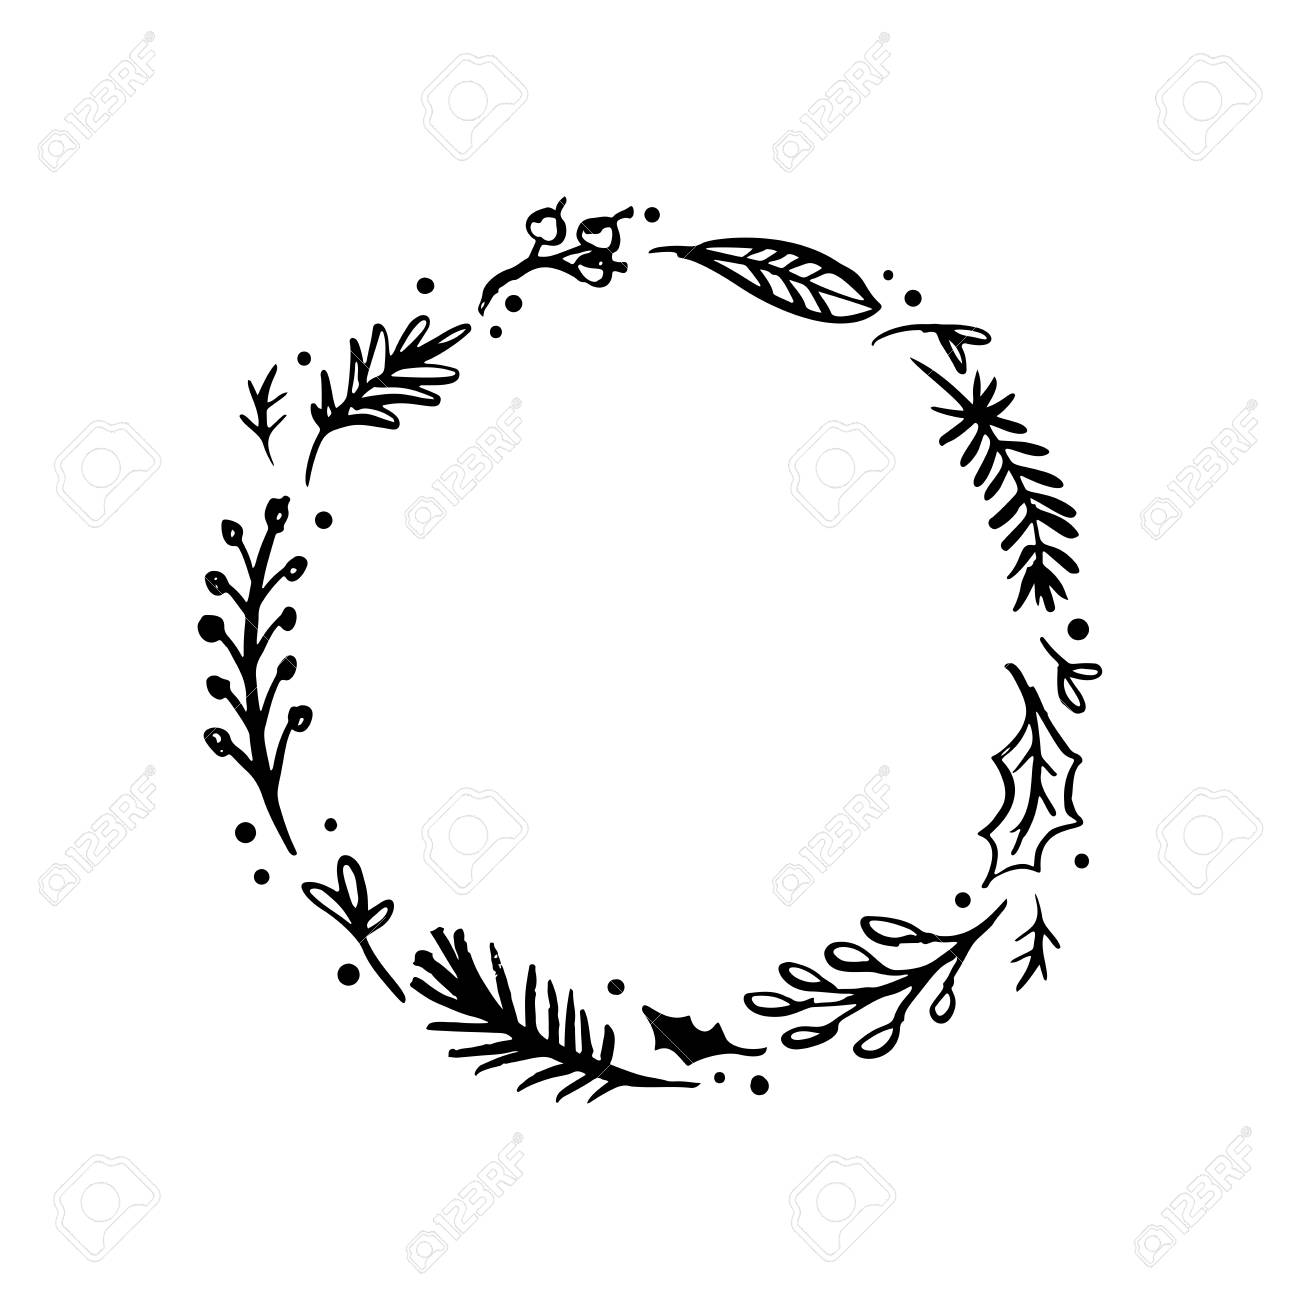 Leaf Wreath Clipart - Floral Rustic Branch And Leaves Wreath For Wedding Invitation ...